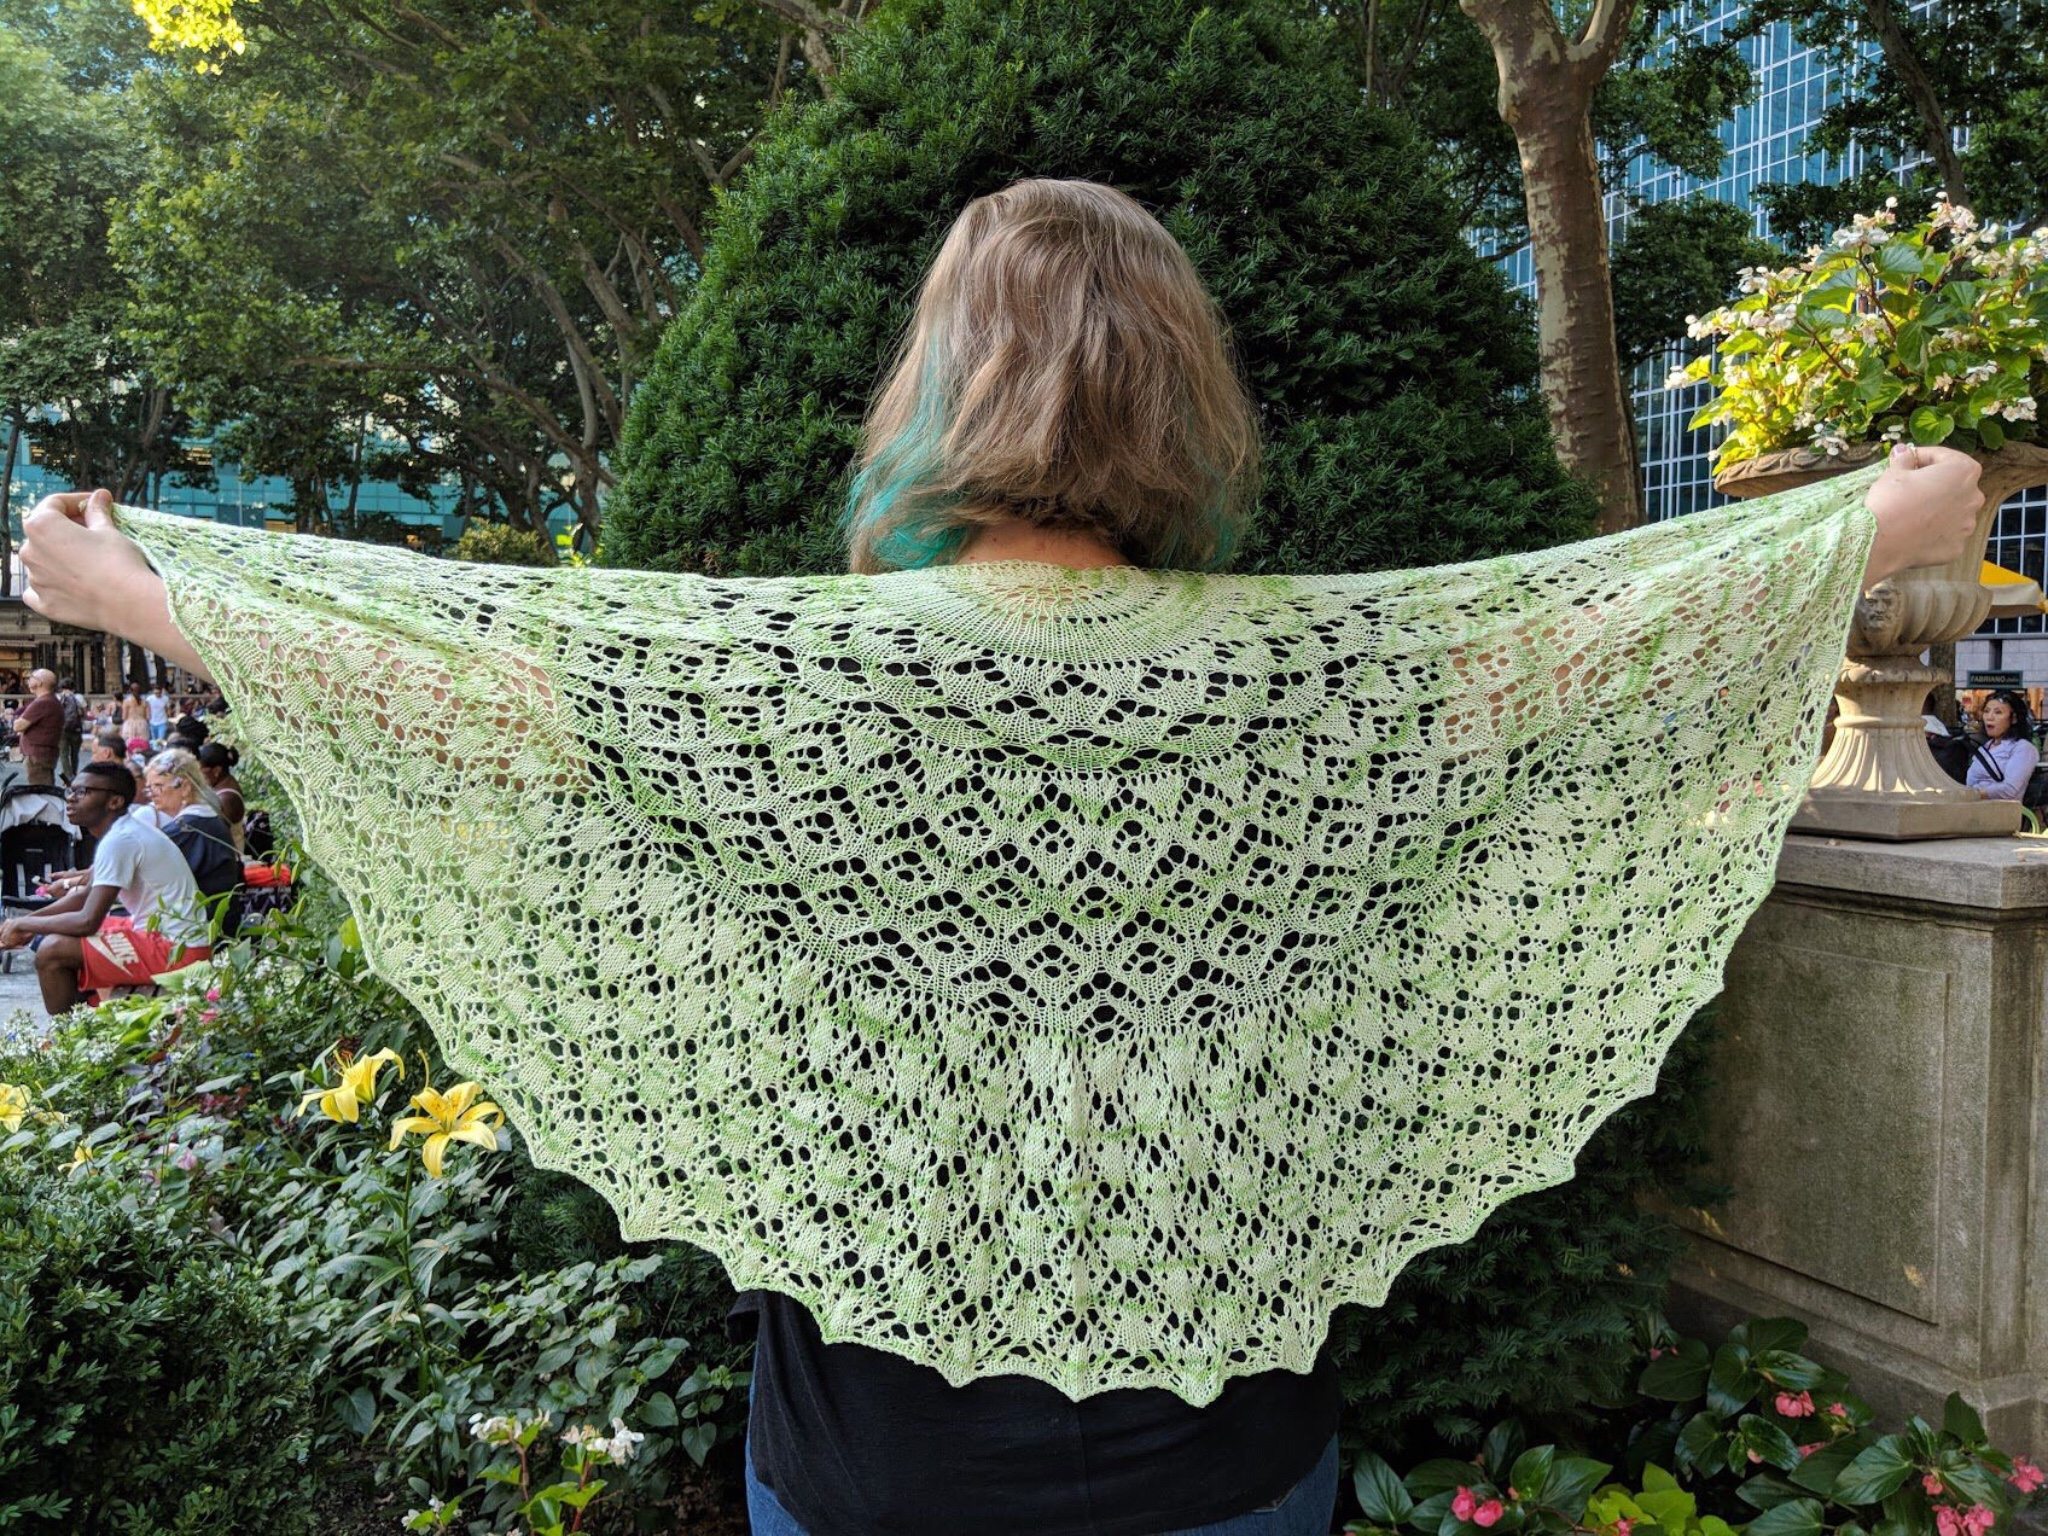 A green semicircular lace shawl being held up over the back of someone's shoulders